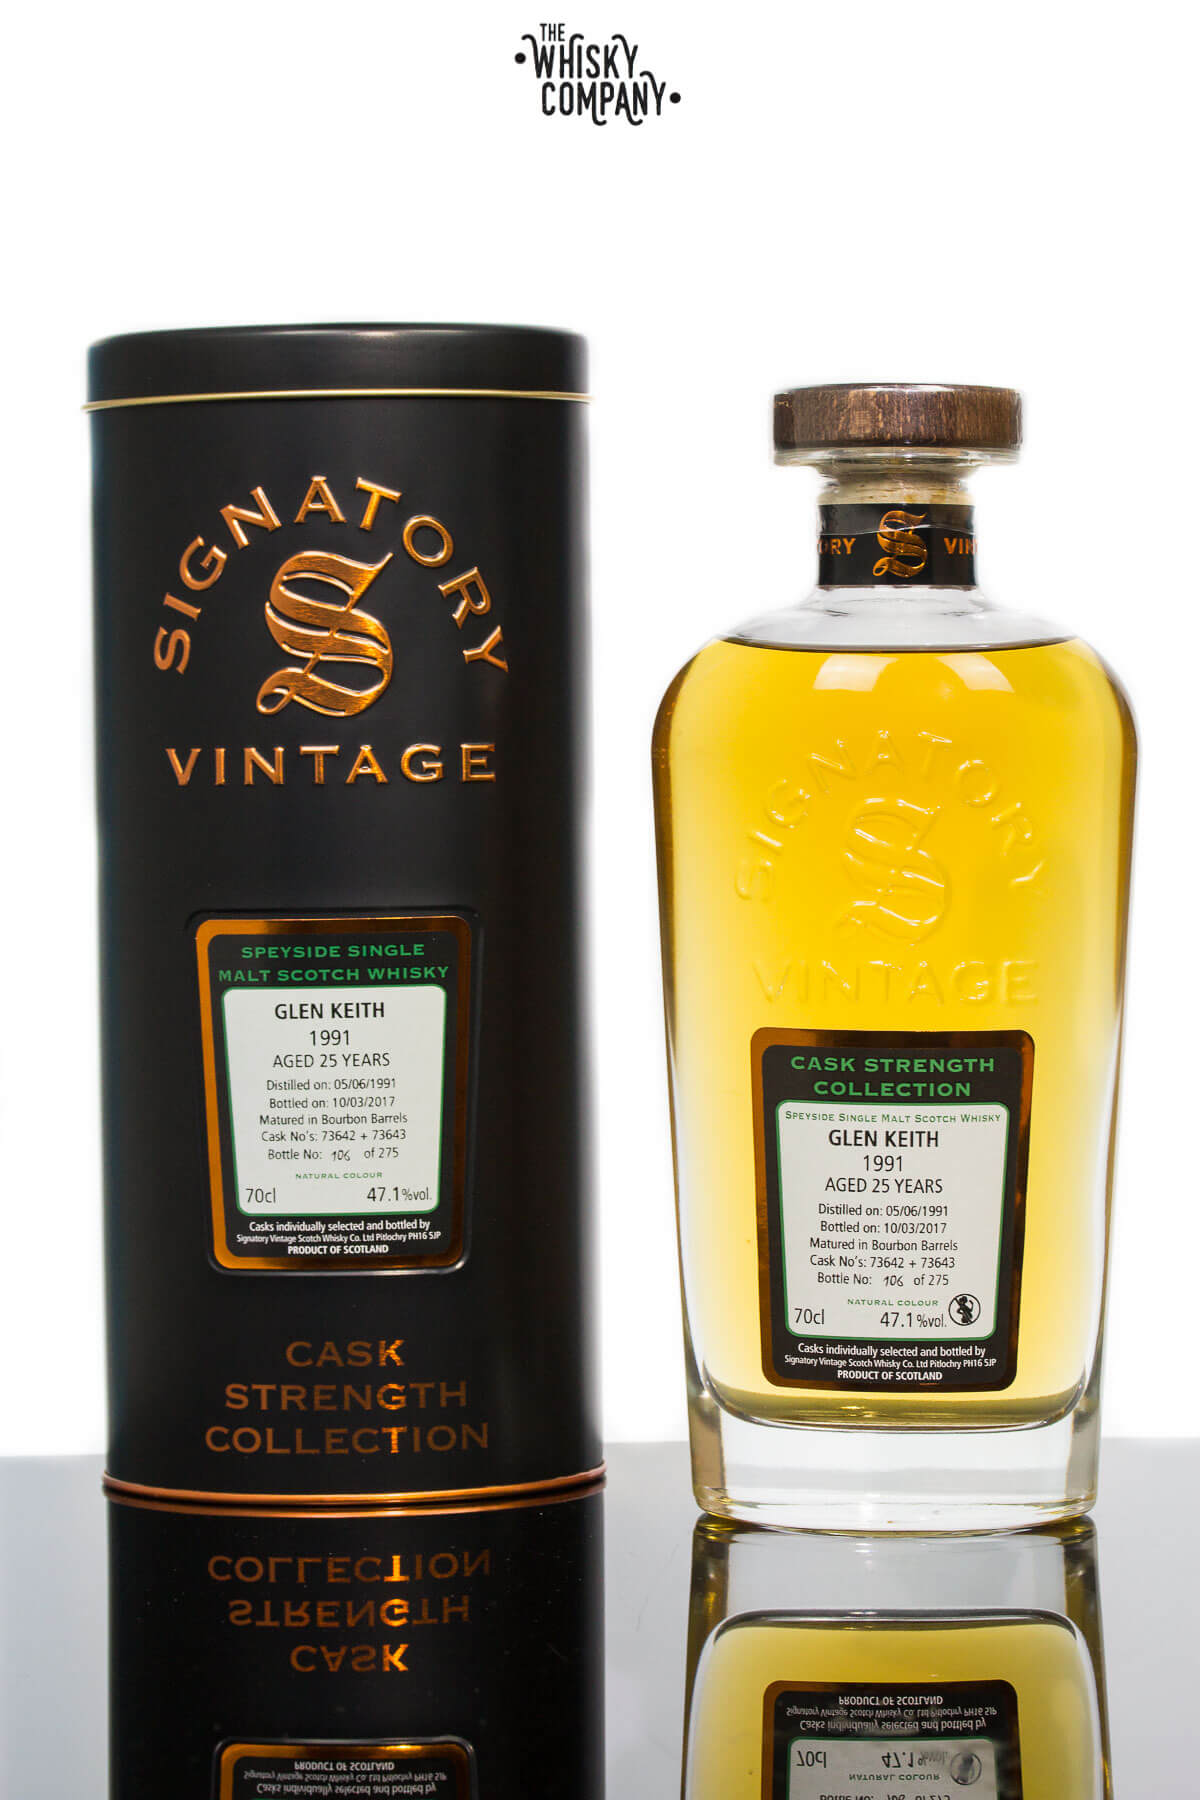 Glen Keith 1991 Aged 25 Years - Signatory Vintage